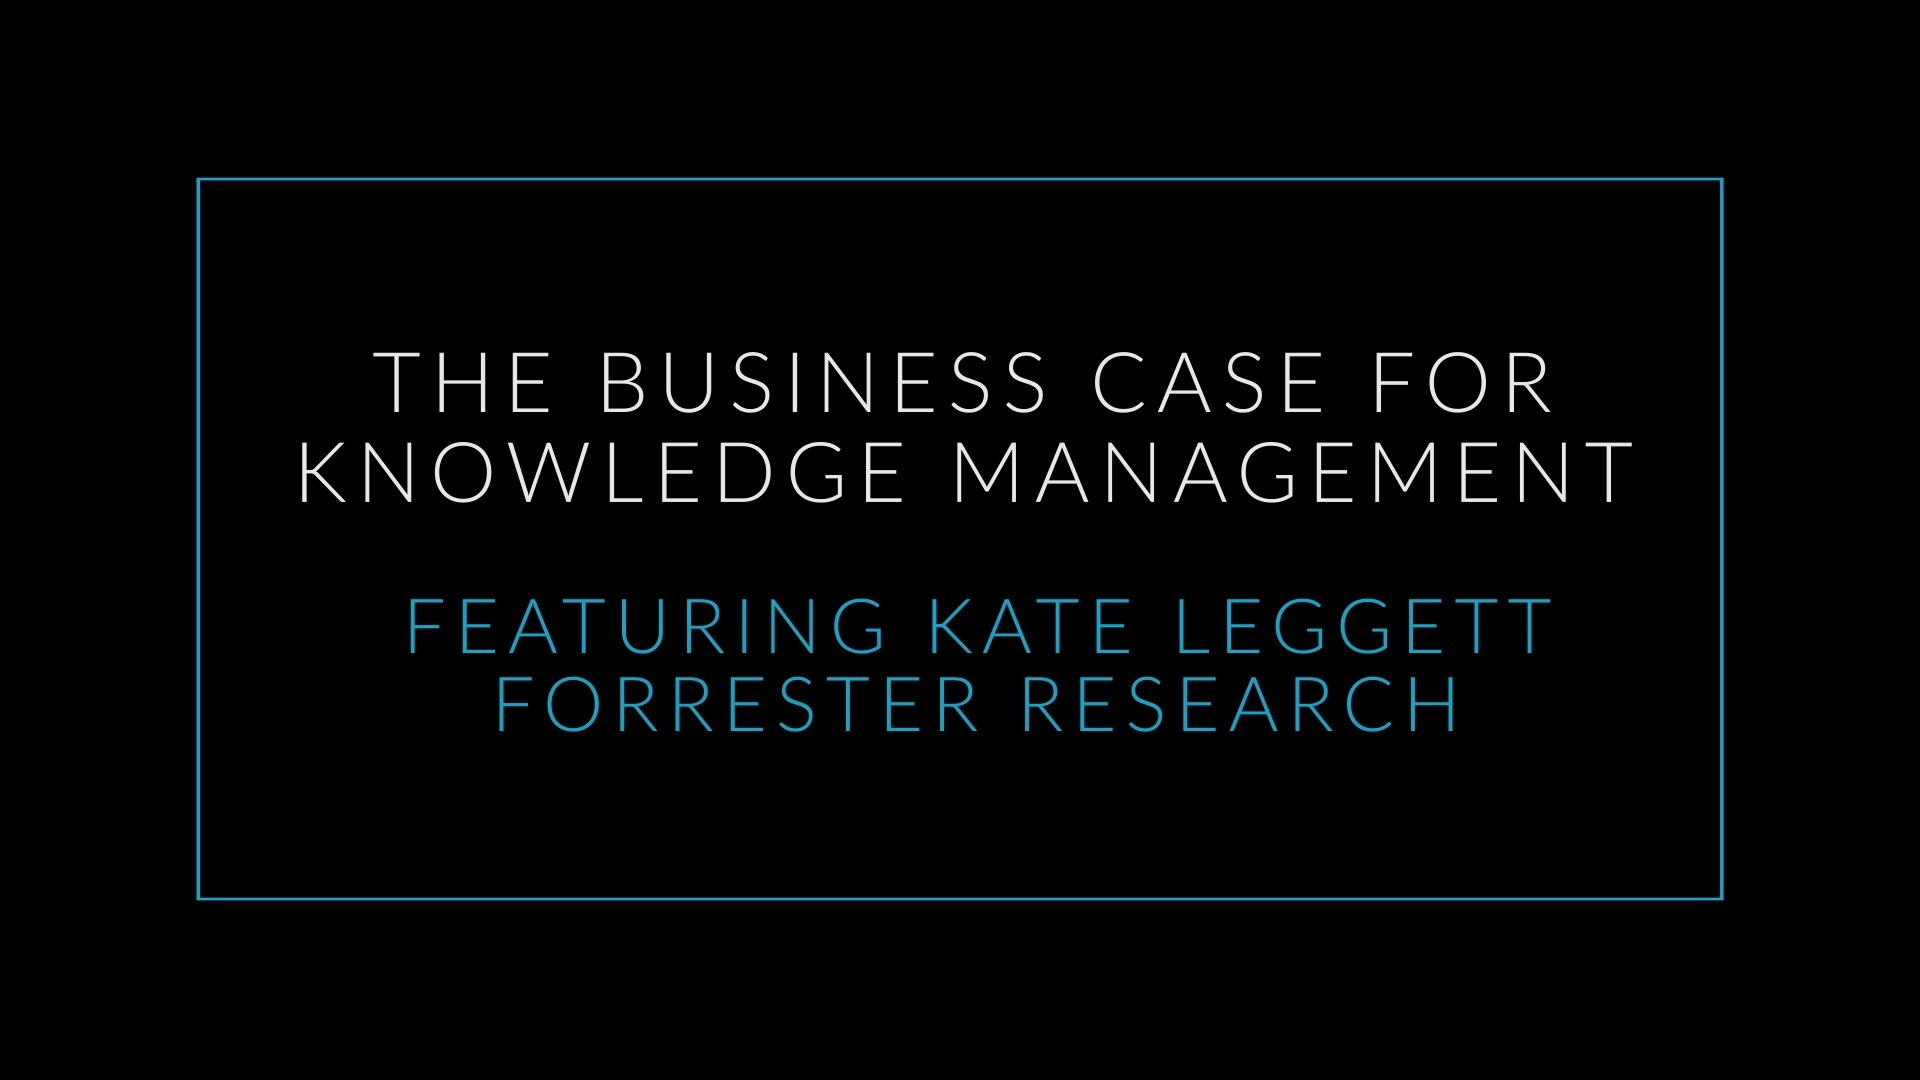 The Business Case of Knowledge Management Featuring Kate Leggett, Forester Research